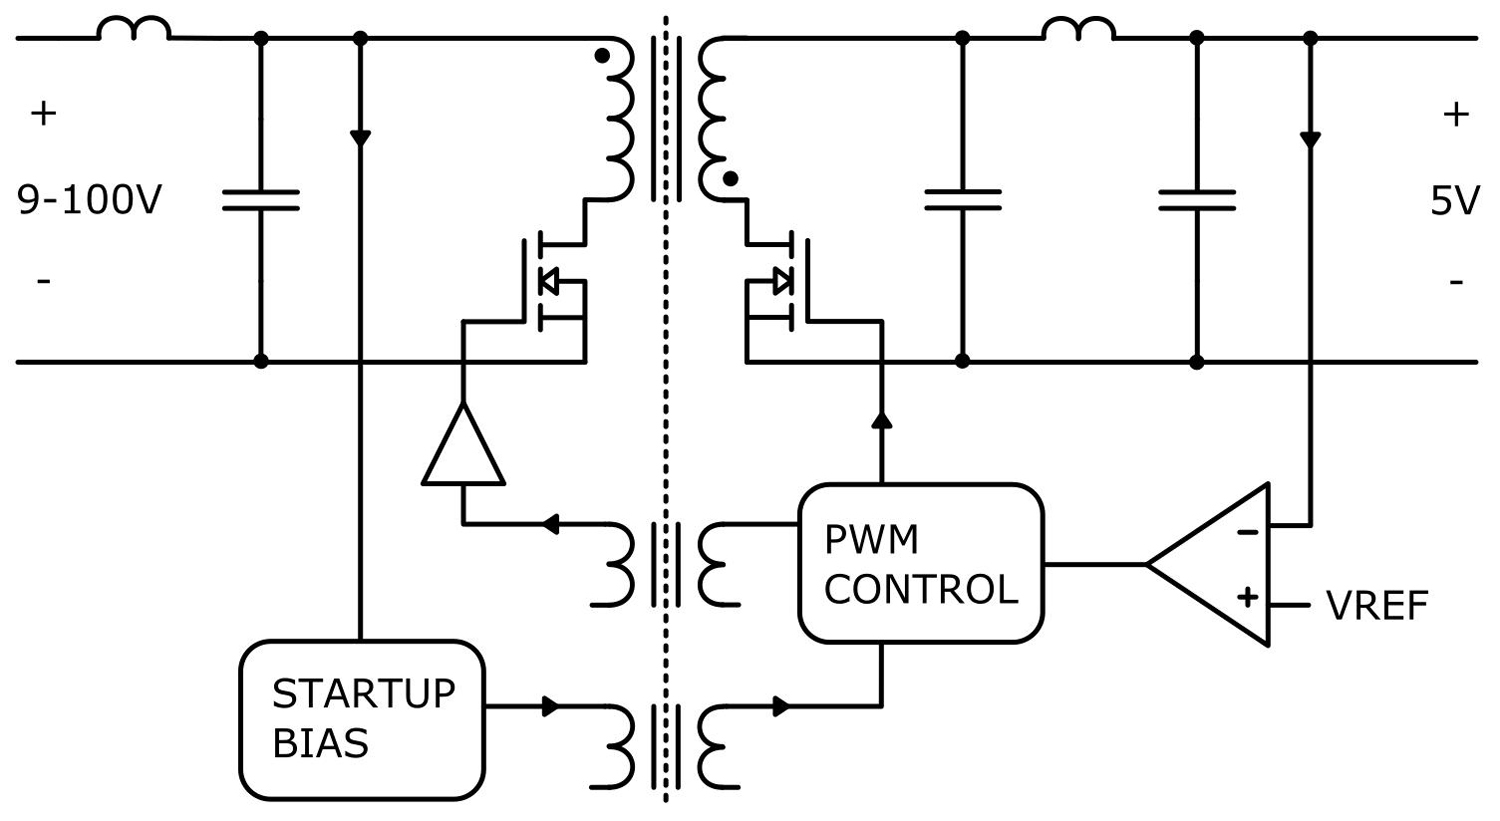 Wide Range Dc Converters Power Military Electronics Design Of Temperature Controlled Pwm Boost Converter Circuit Figure 1 Flyback Topology With Secondary Side Pulse Width Modulation And Control Driven Synchronous Rectifiers For Optimum Efficiency